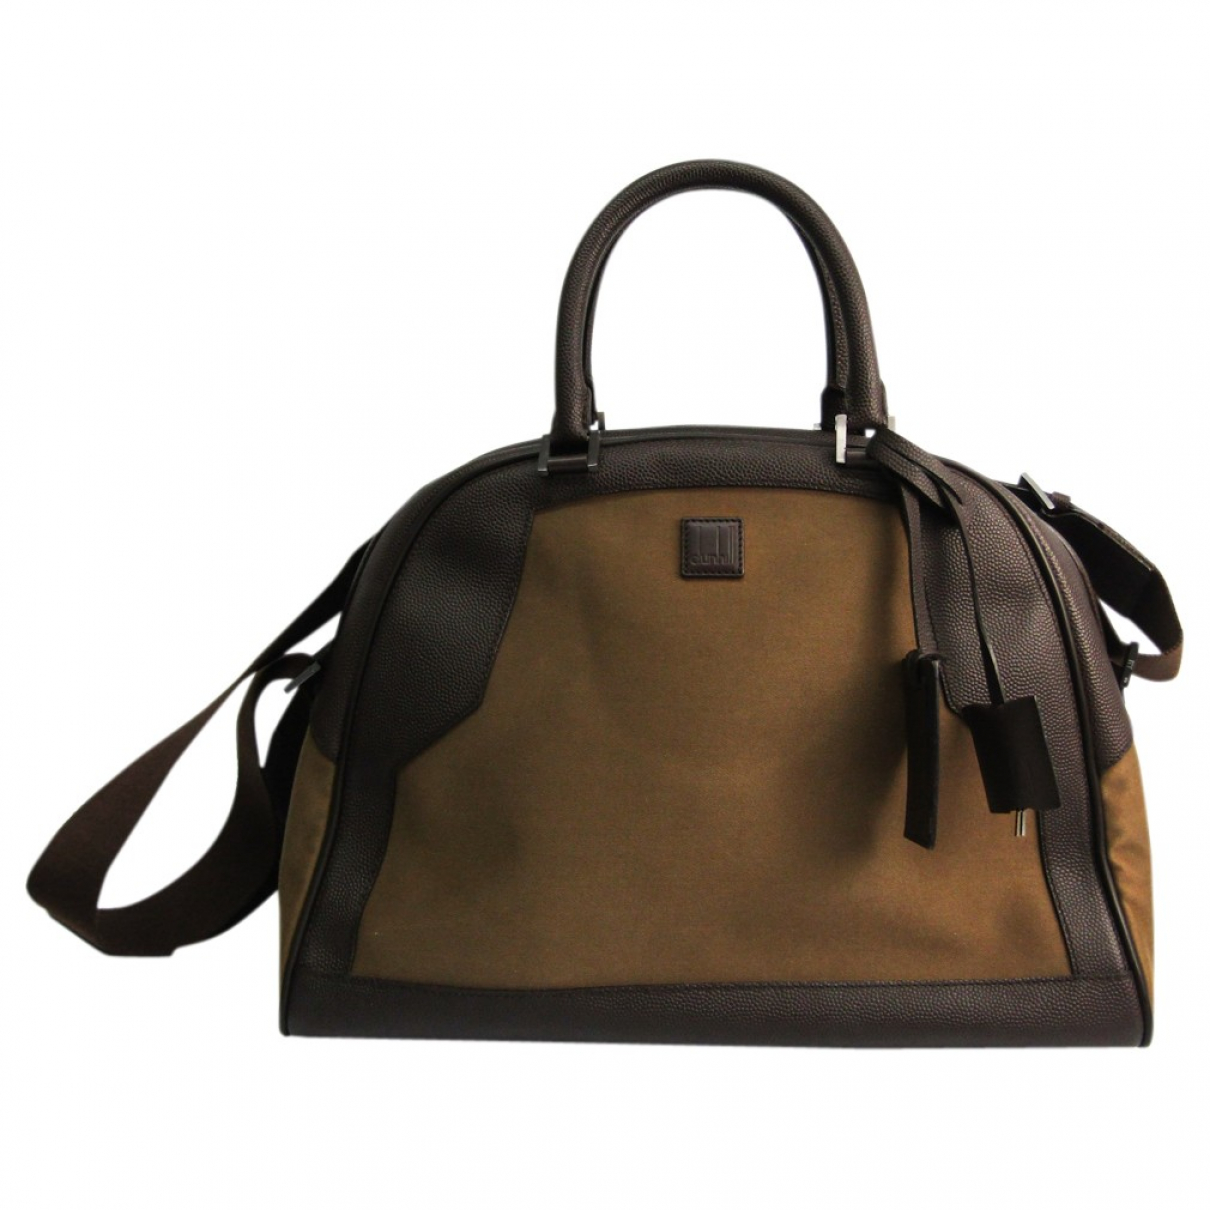 Alfred Dunhill N Brown Leather bag for Men N